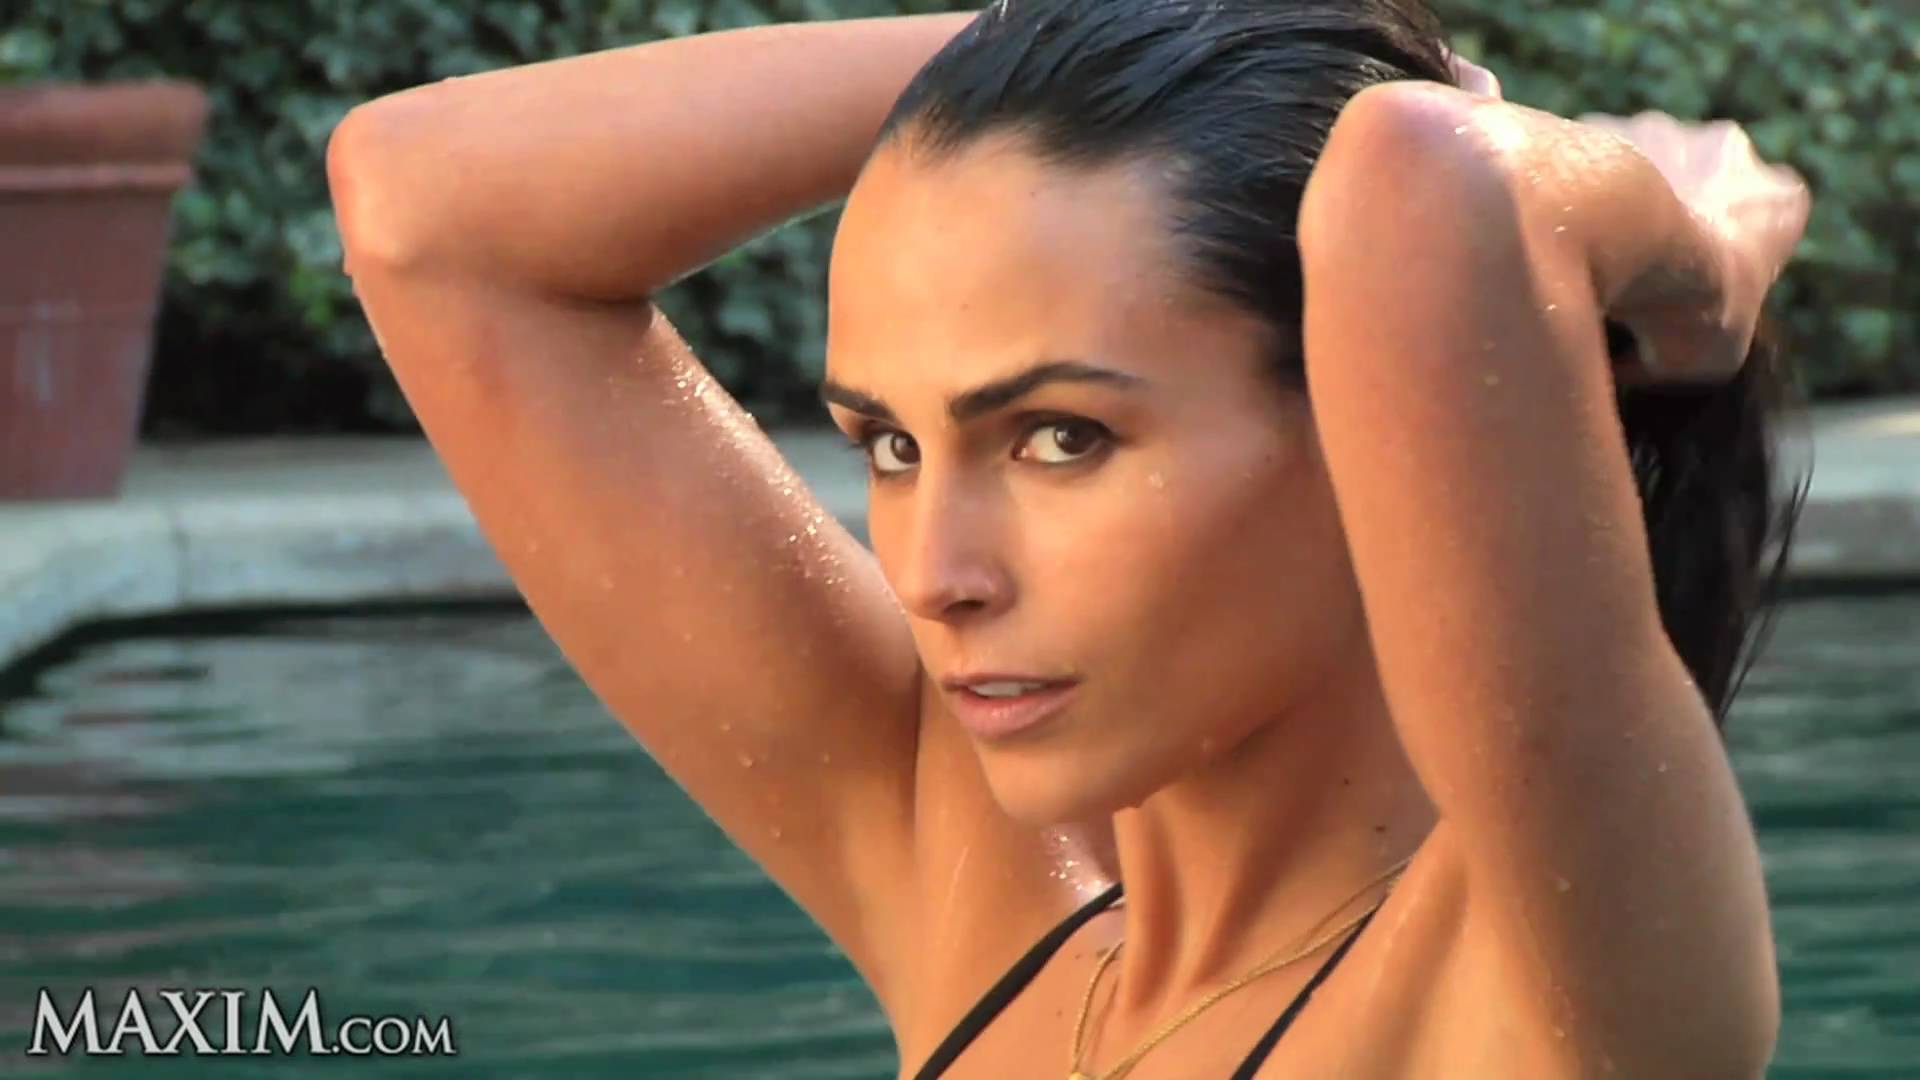 Jordana Brewster's Really Hot Maxim Photoshoot